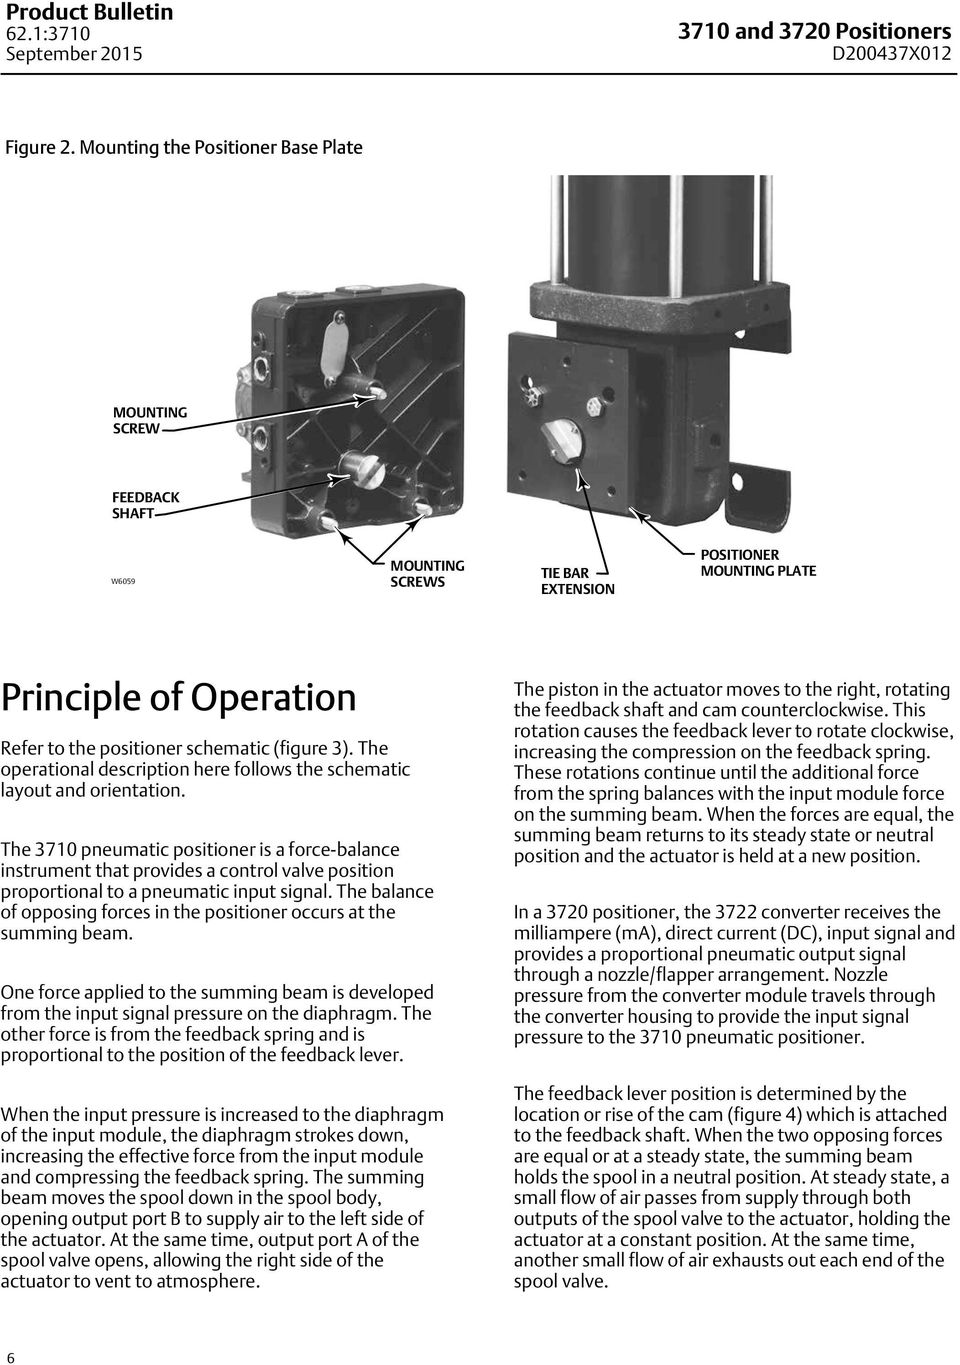 Fisher 3710 And 3720 Positioners 3722 Electro Pneumatic Auto Rod Controls Wiring Diagram The Operational Description Here Follows Schematic Layout Orientation